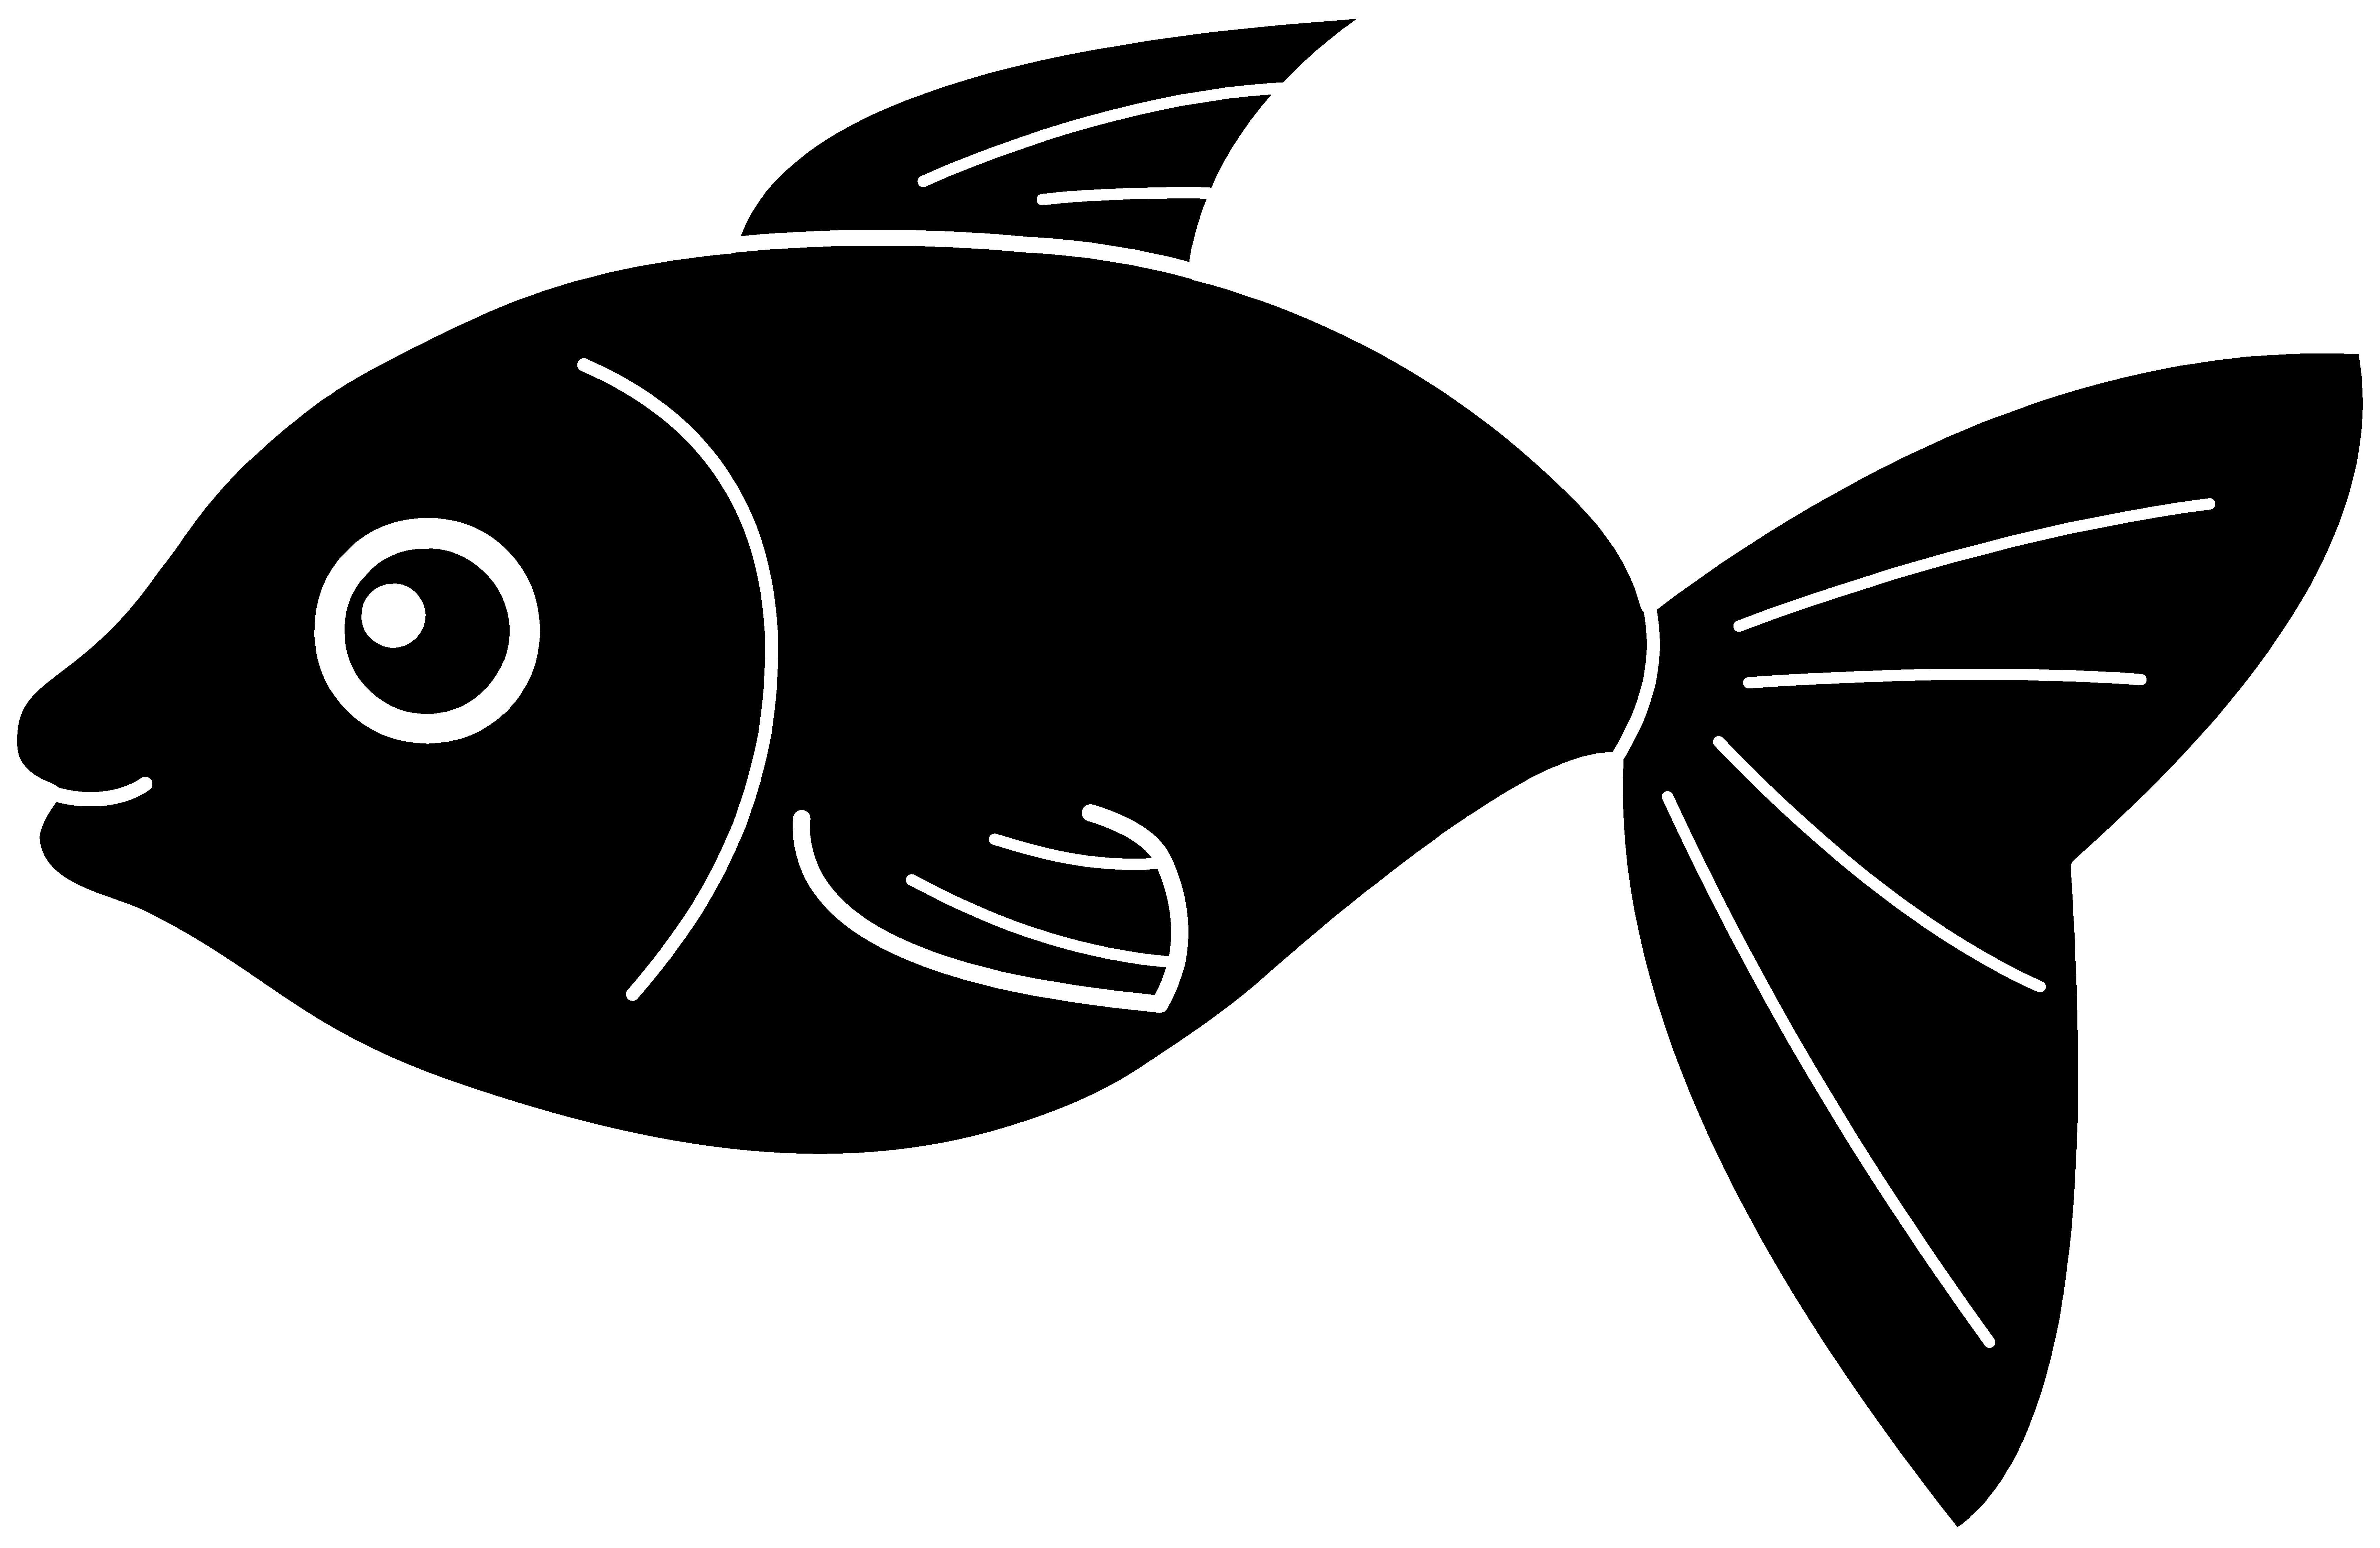 Shadow clipart fish #2